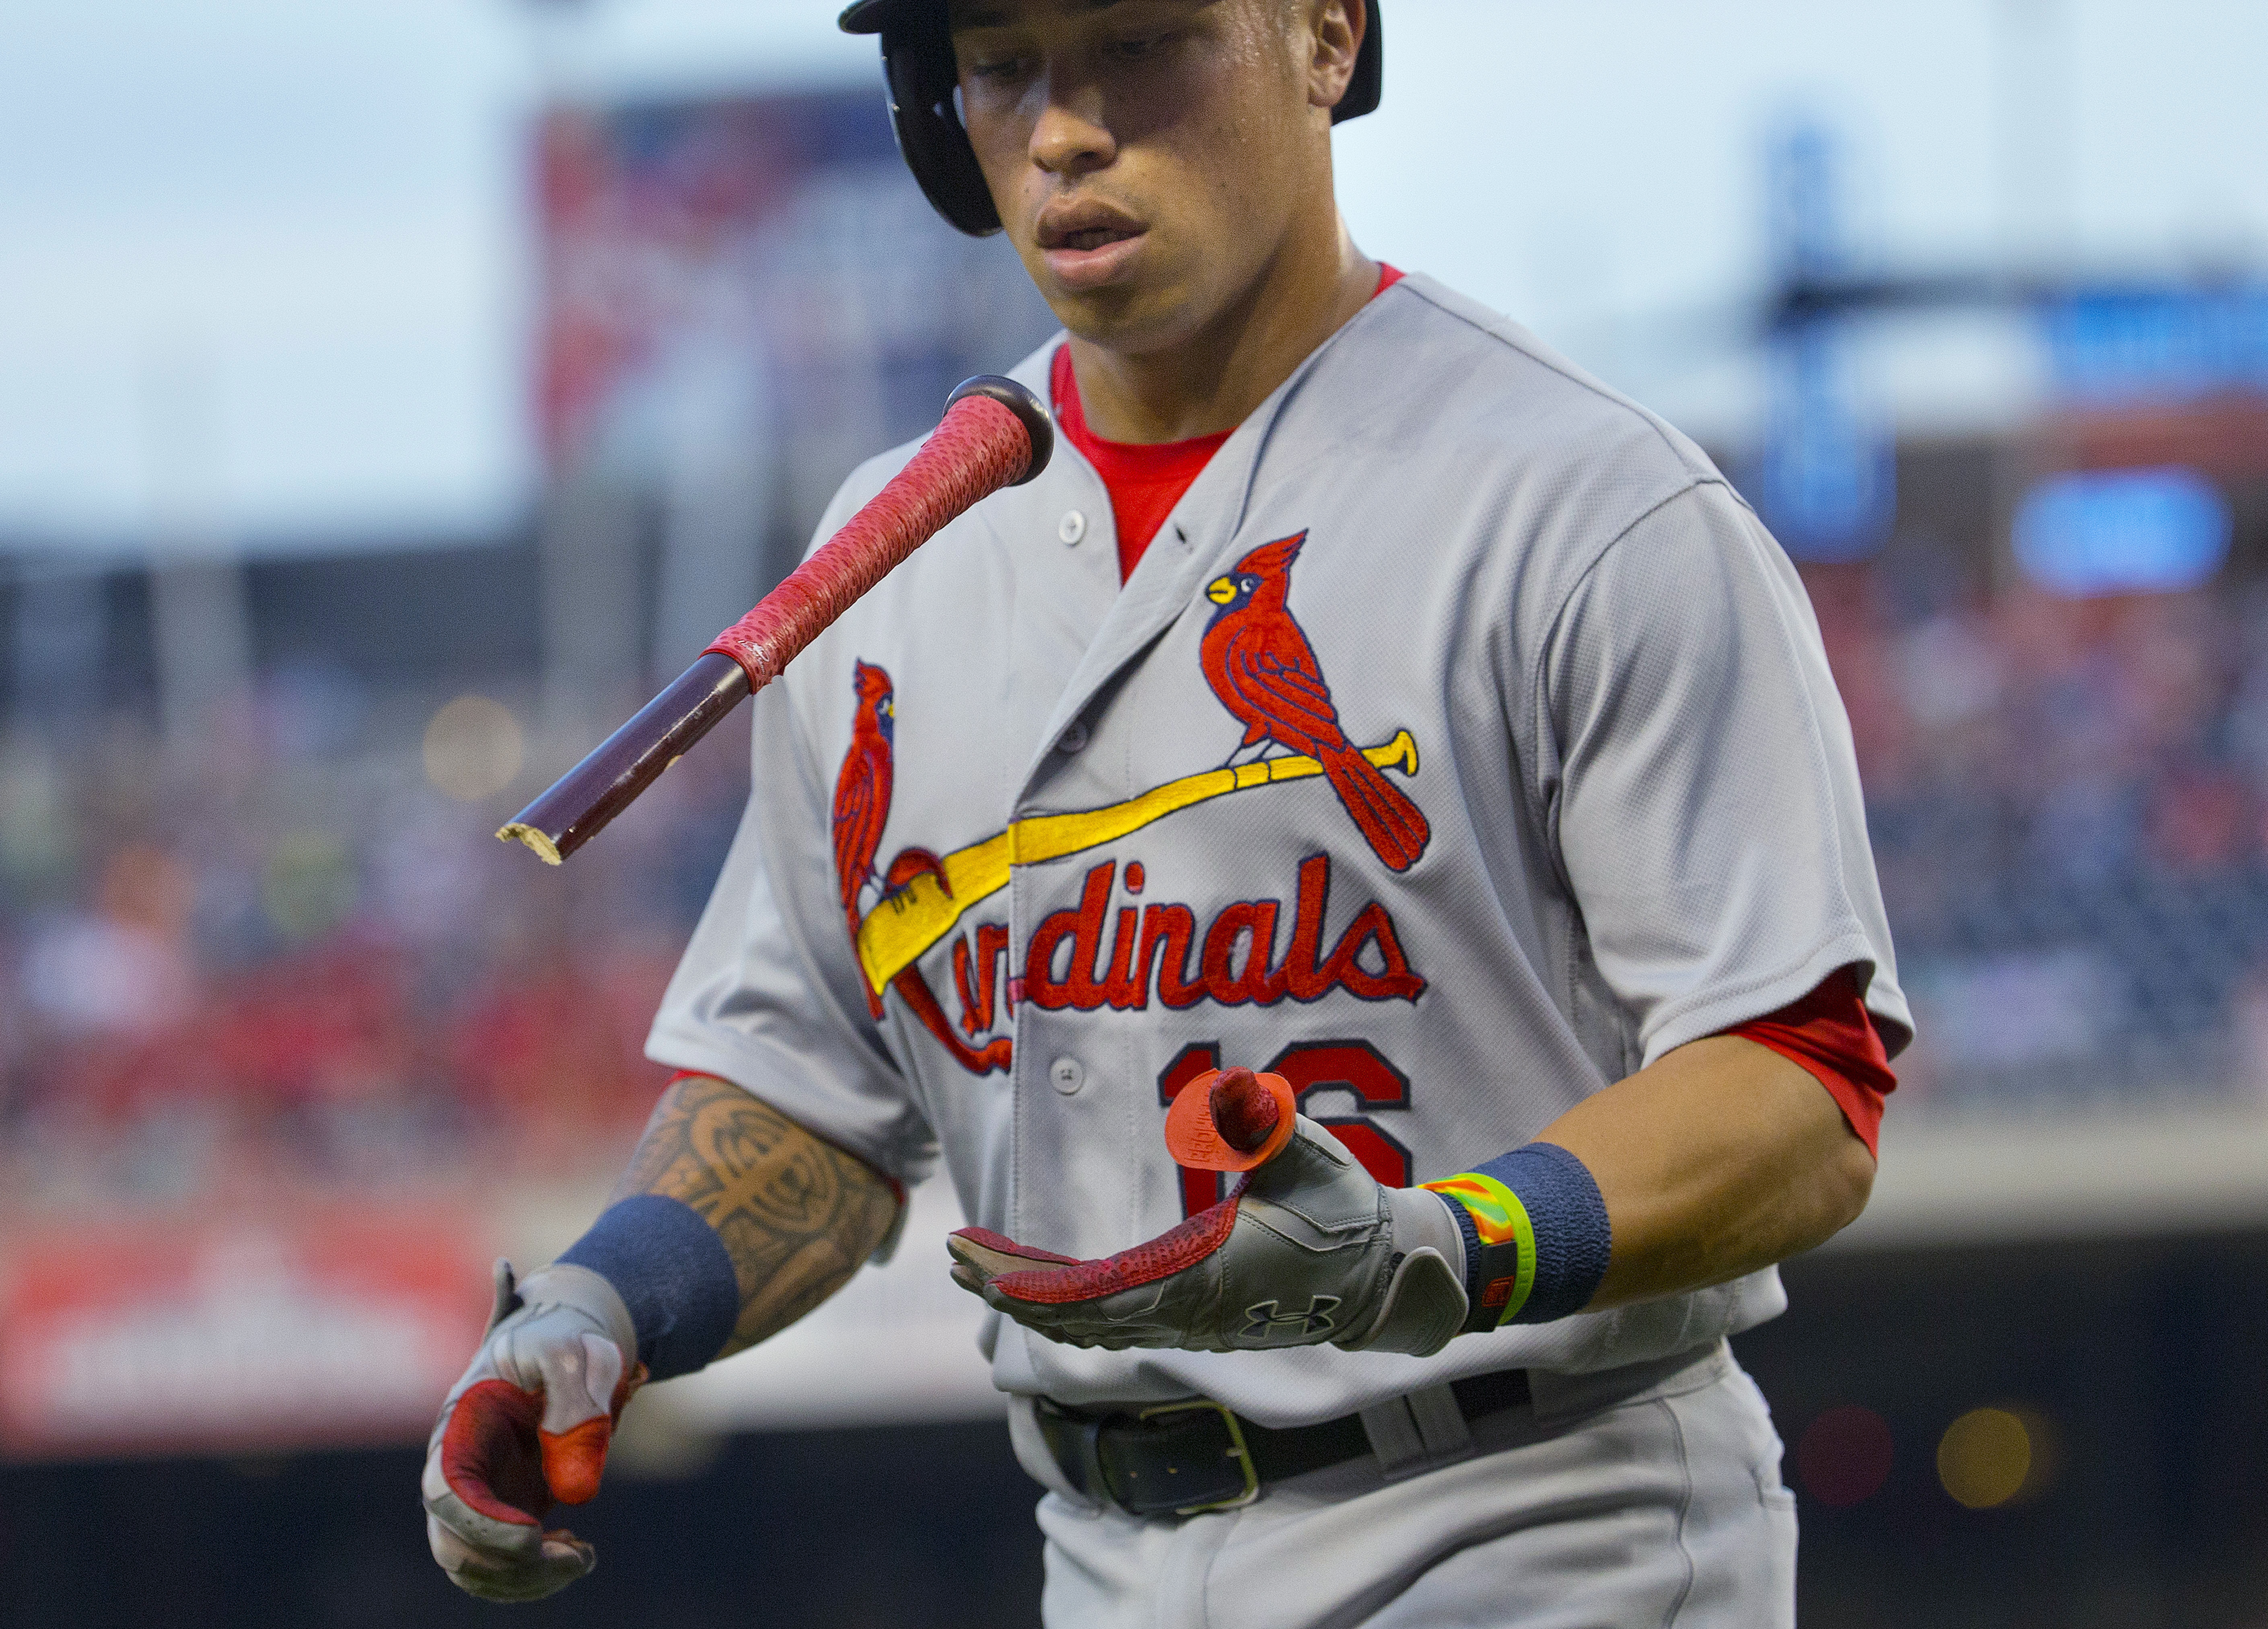 St. Louis Cardinals Kolten Wong flips what remains of his bat after breaking it while grounding out against the Washington Nationals during the third inning of a baseball game at Nationals Park, Thursday, May 26, 2016, in Washington. (AP Photo/Pablo Marti